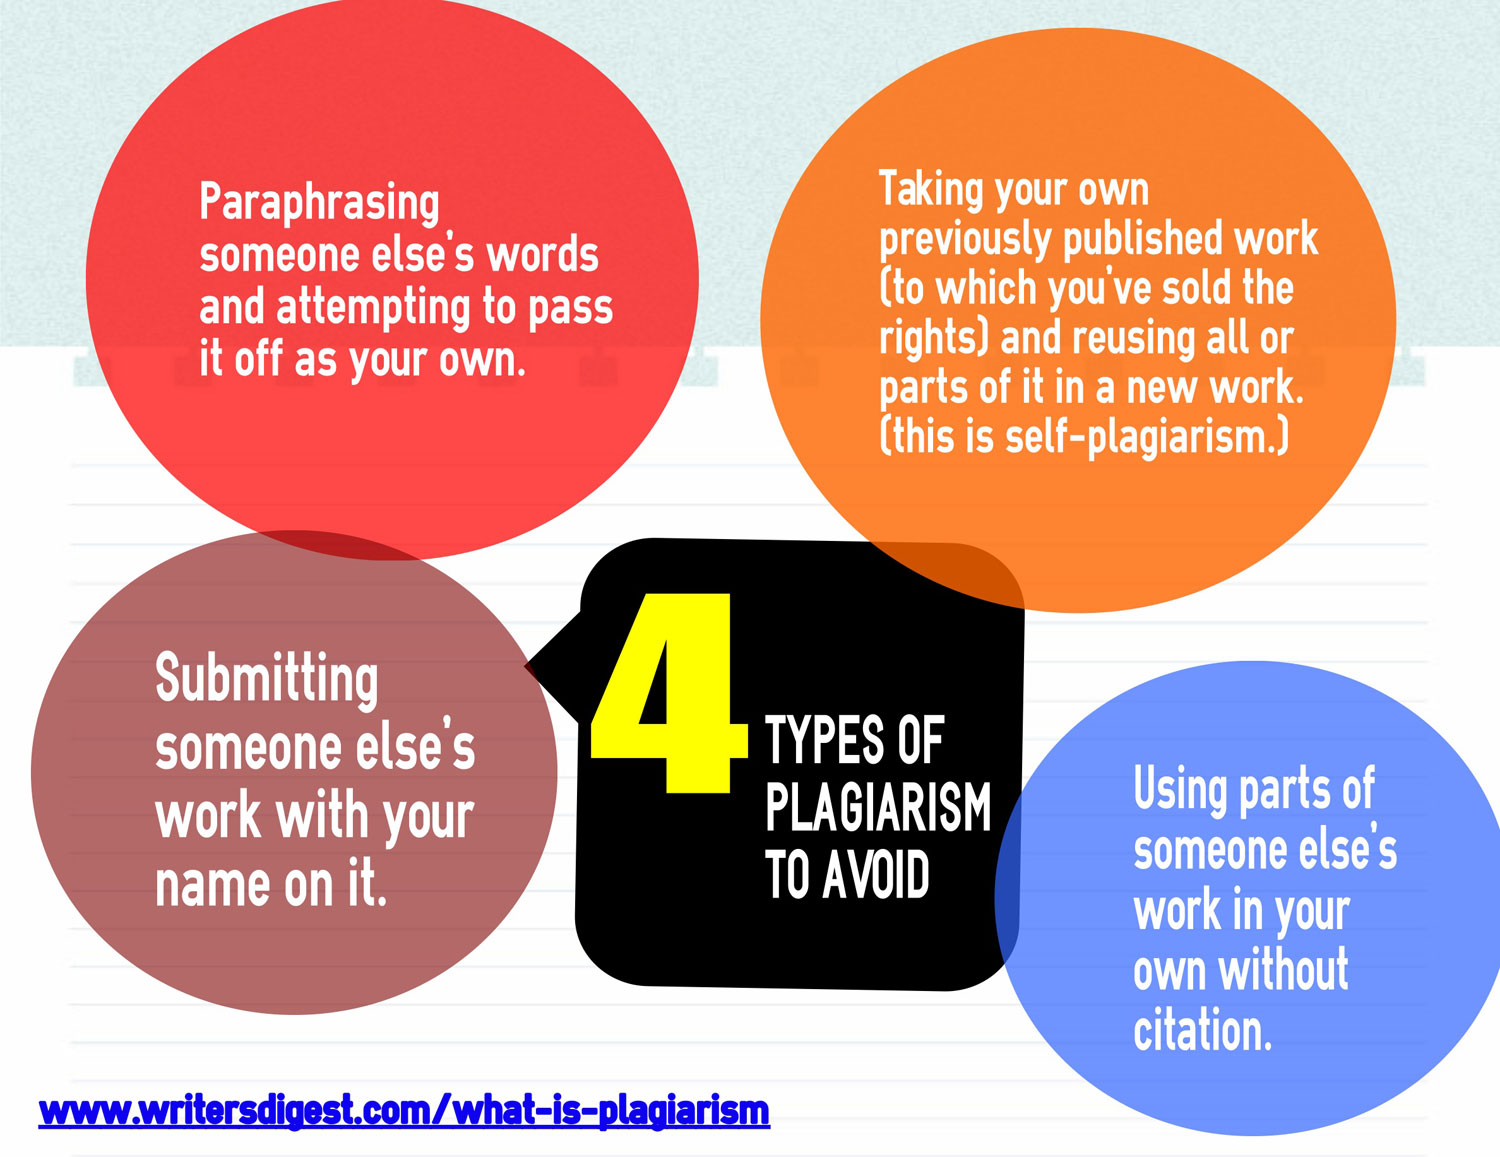 4 types of plagiarism to avoid